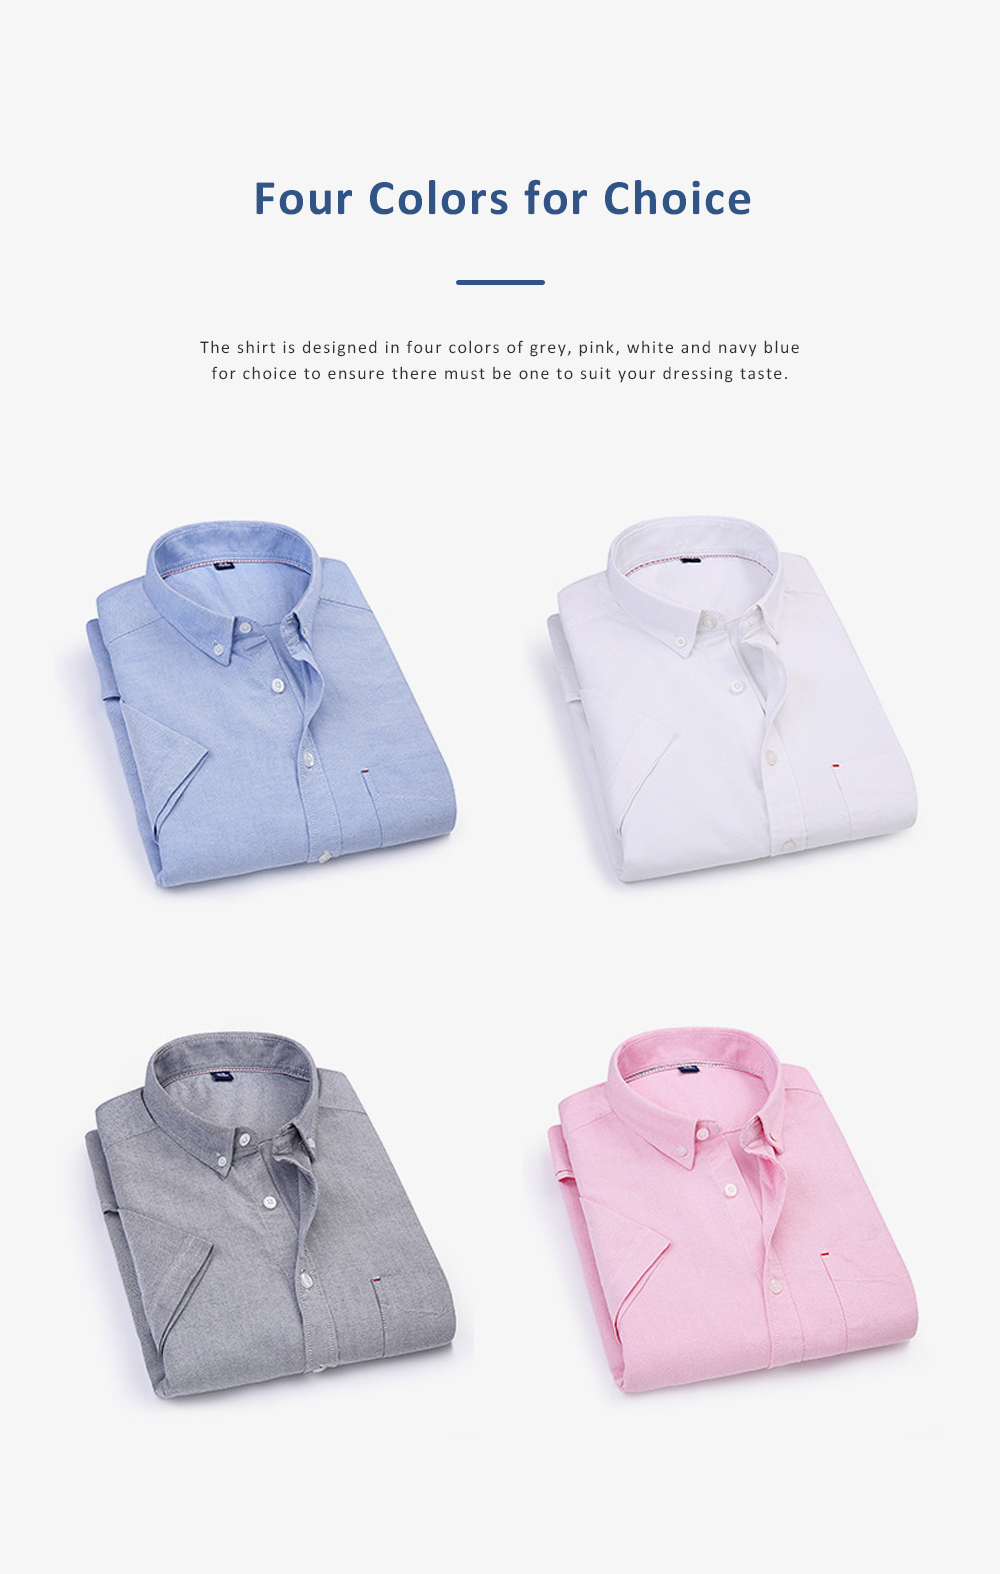 Pure Cotton Short Sleeve Shirt with Embroidered for Men's Daily Wear in Summer  Casual Style Simple Designed Pure Color Men Clothing 4